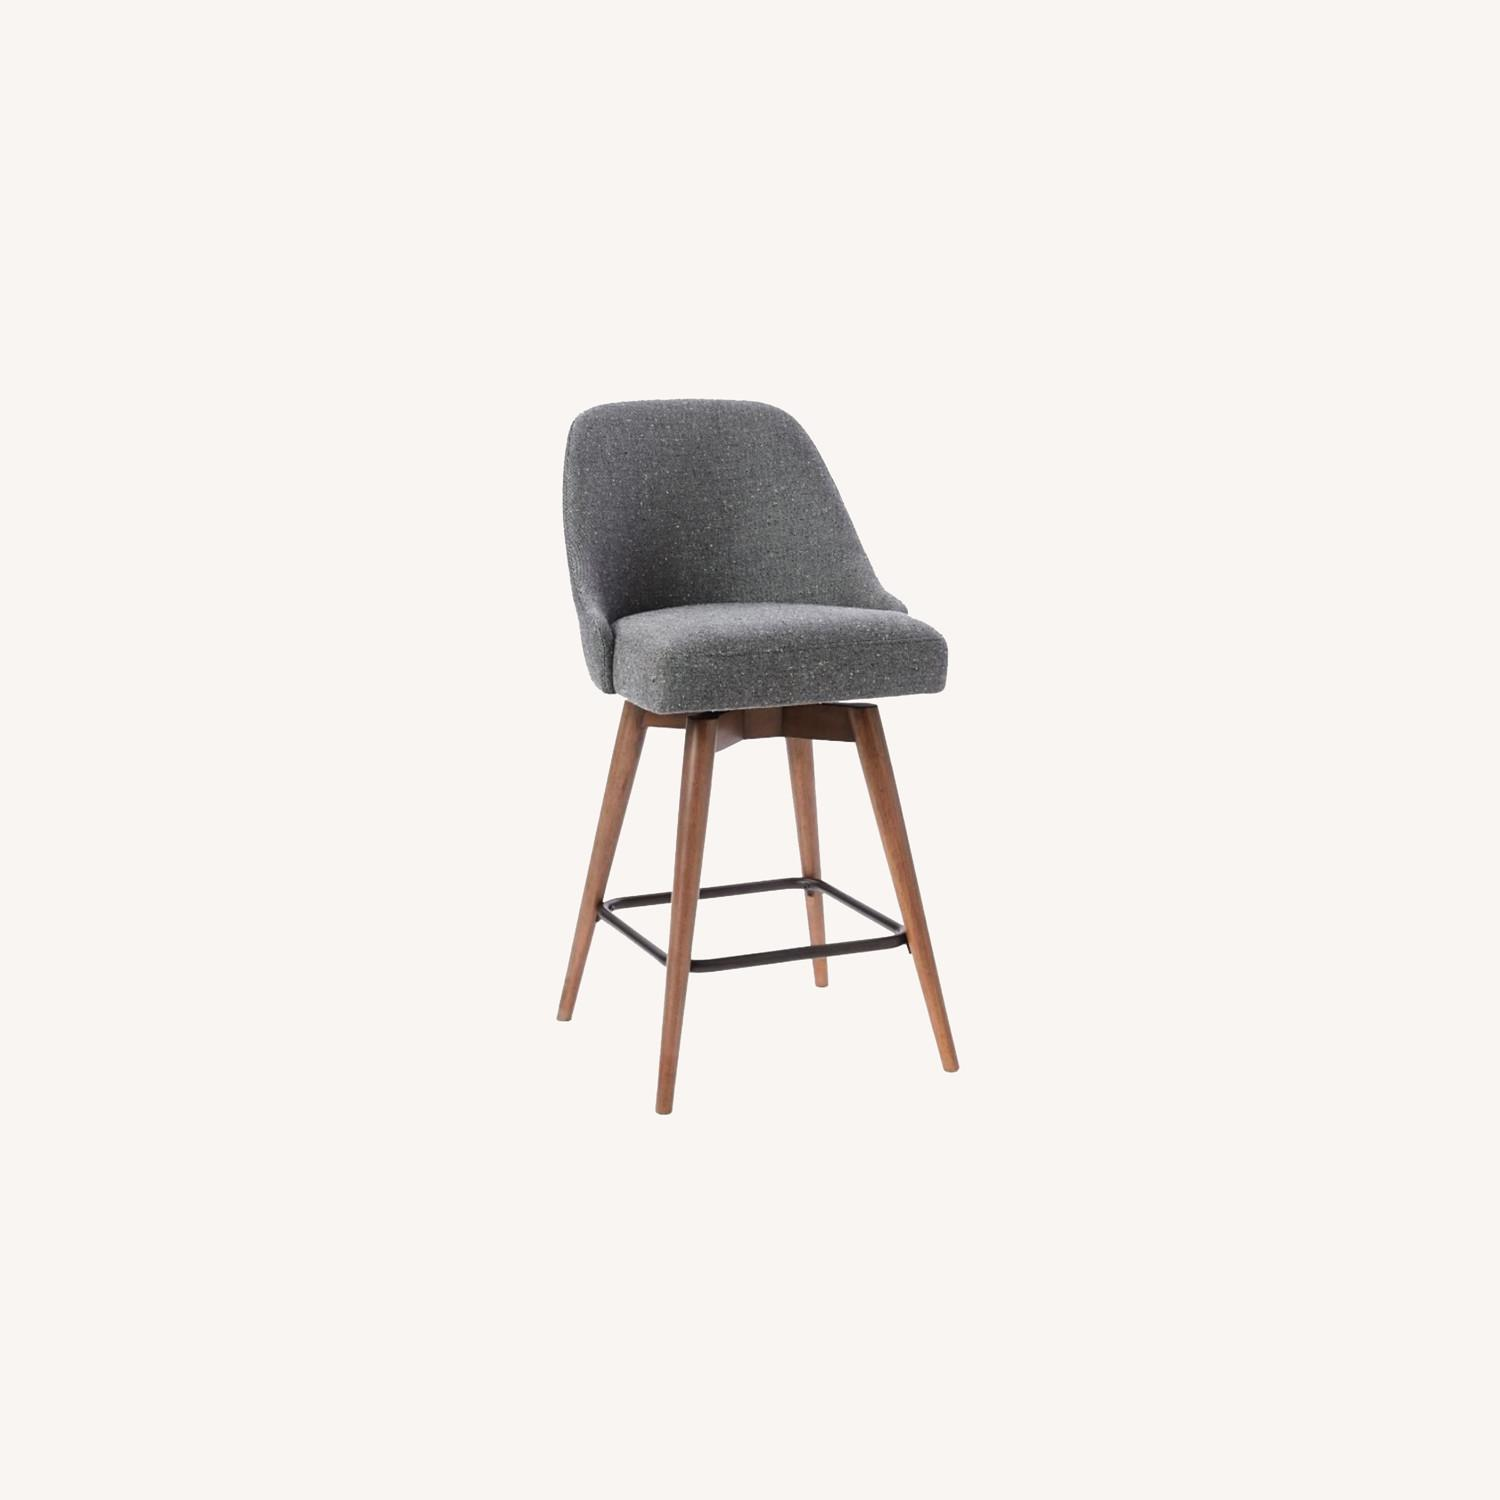 West Elm Upholstered Counter Stools - image-0